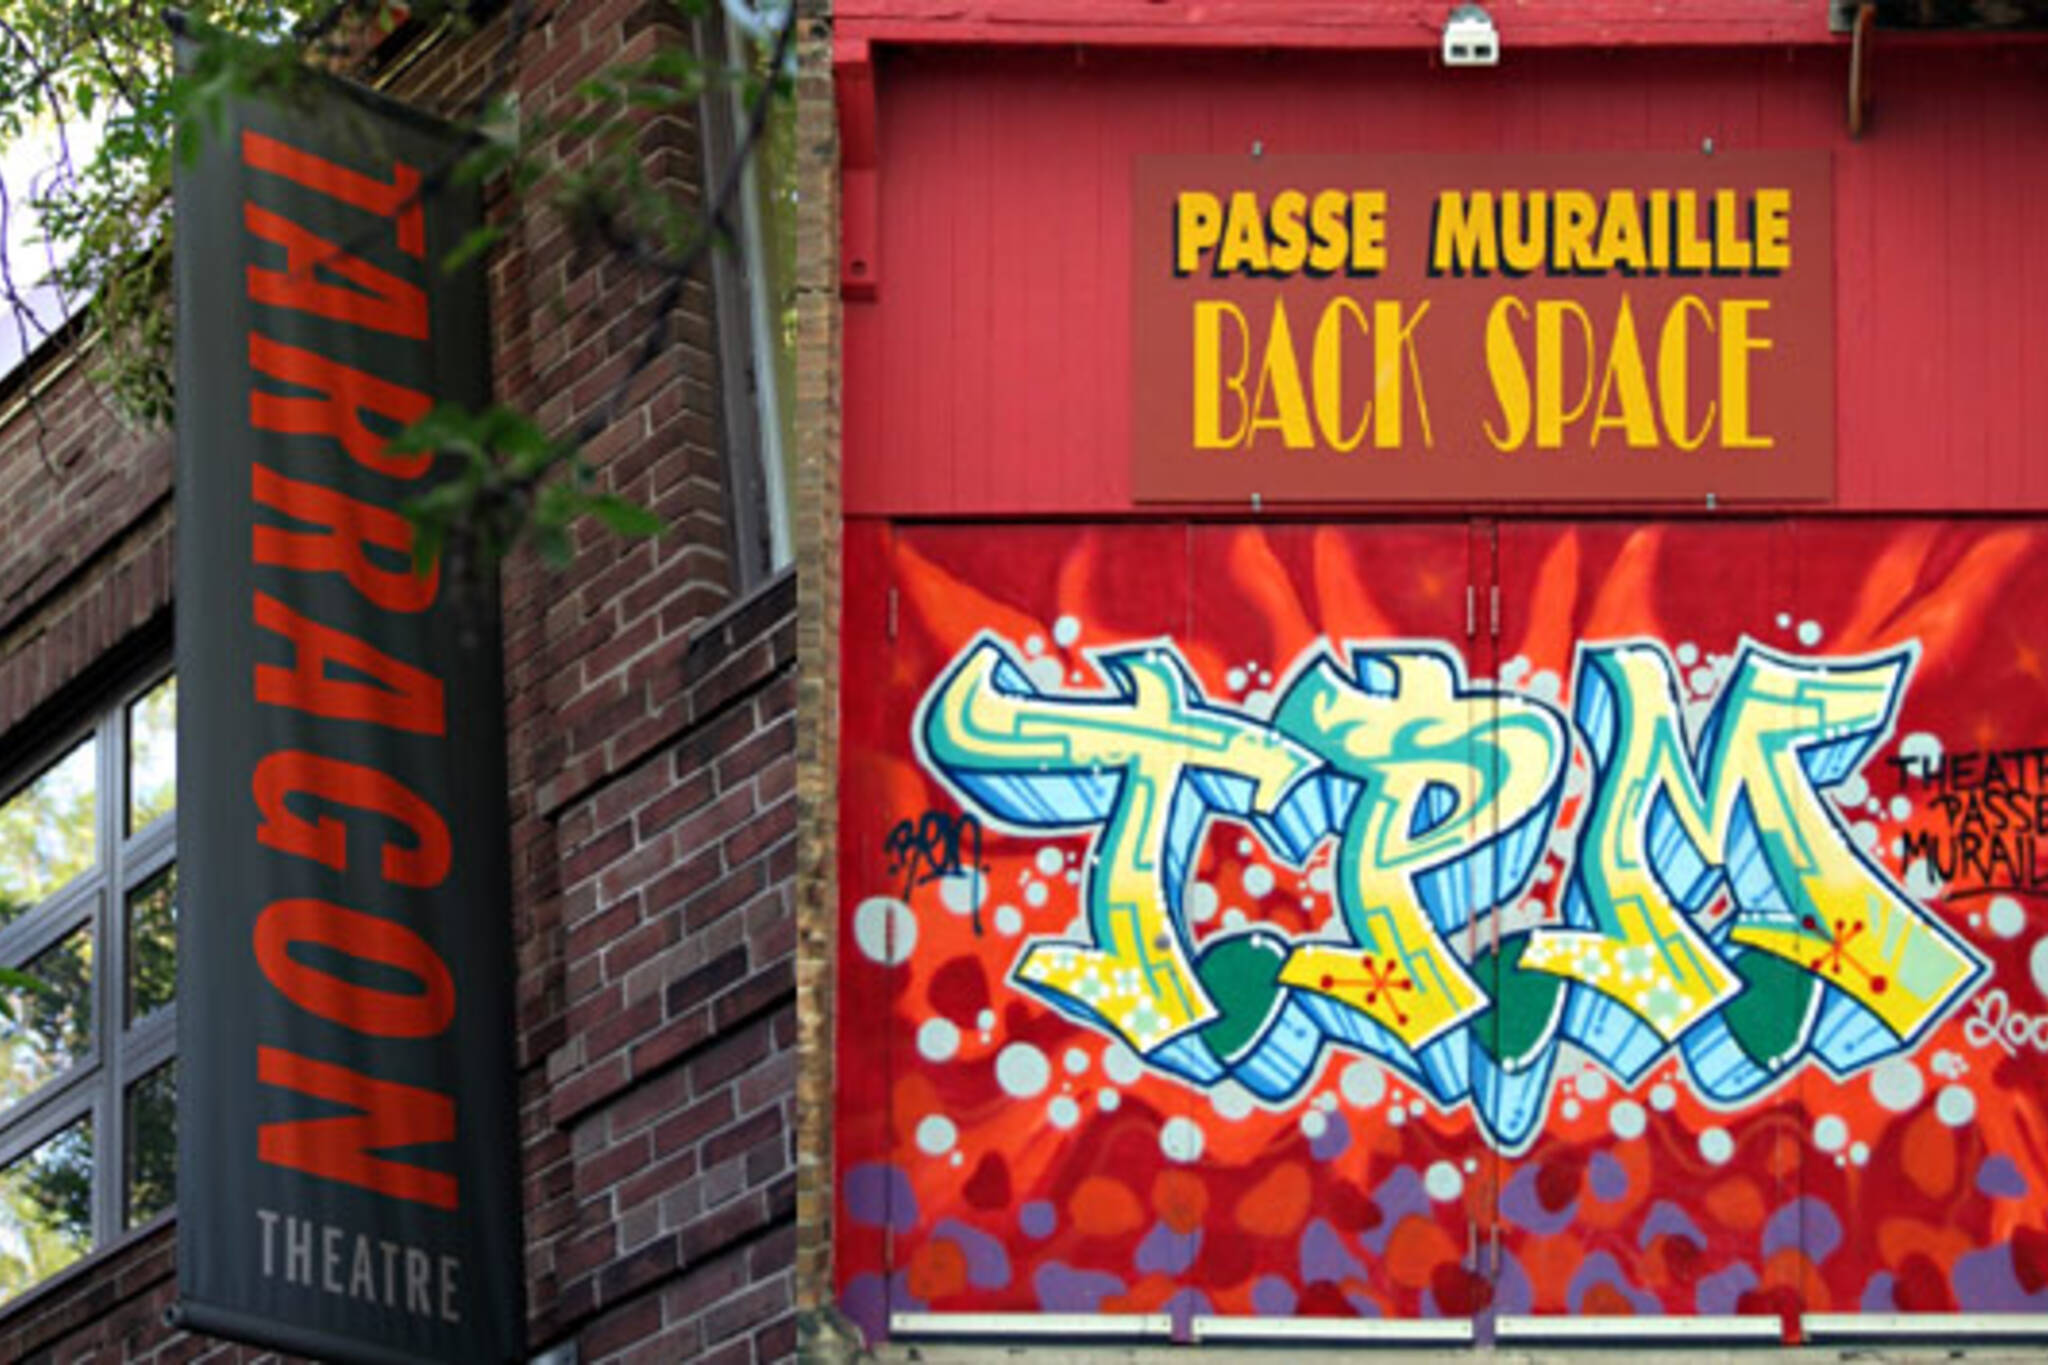 Tarragon Theatre and Theatre Passe Muraille